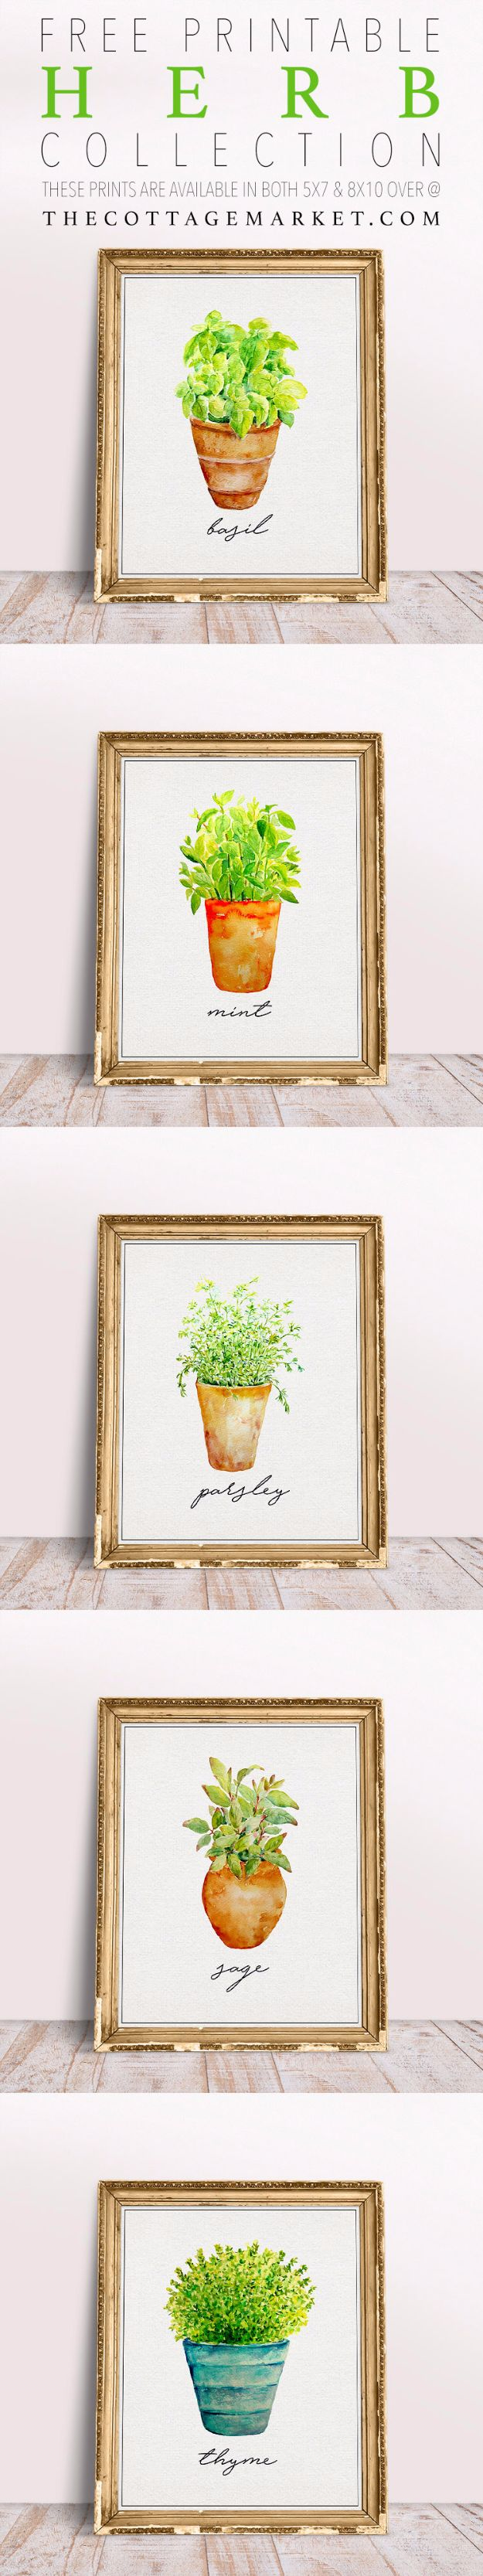 35 best free printables for your walls diy joy free printables for your walls free printable herb collection best free prints for wall jeuxipadfo Gallery